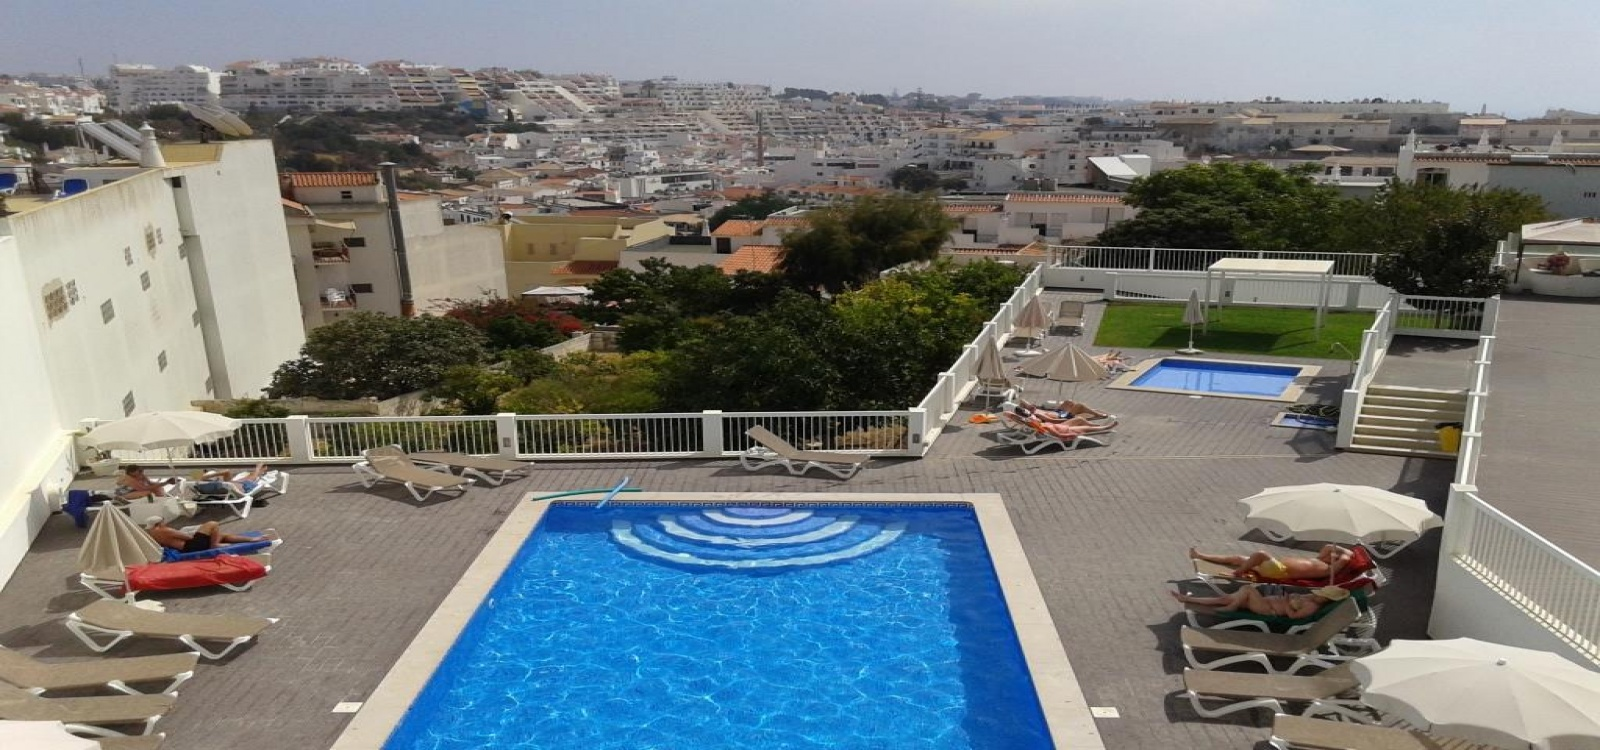 Apartment, Vacation Rental, Fifth Floor, 1 Bathrooms, Listing ID 1015, Albufeira, Portugal,